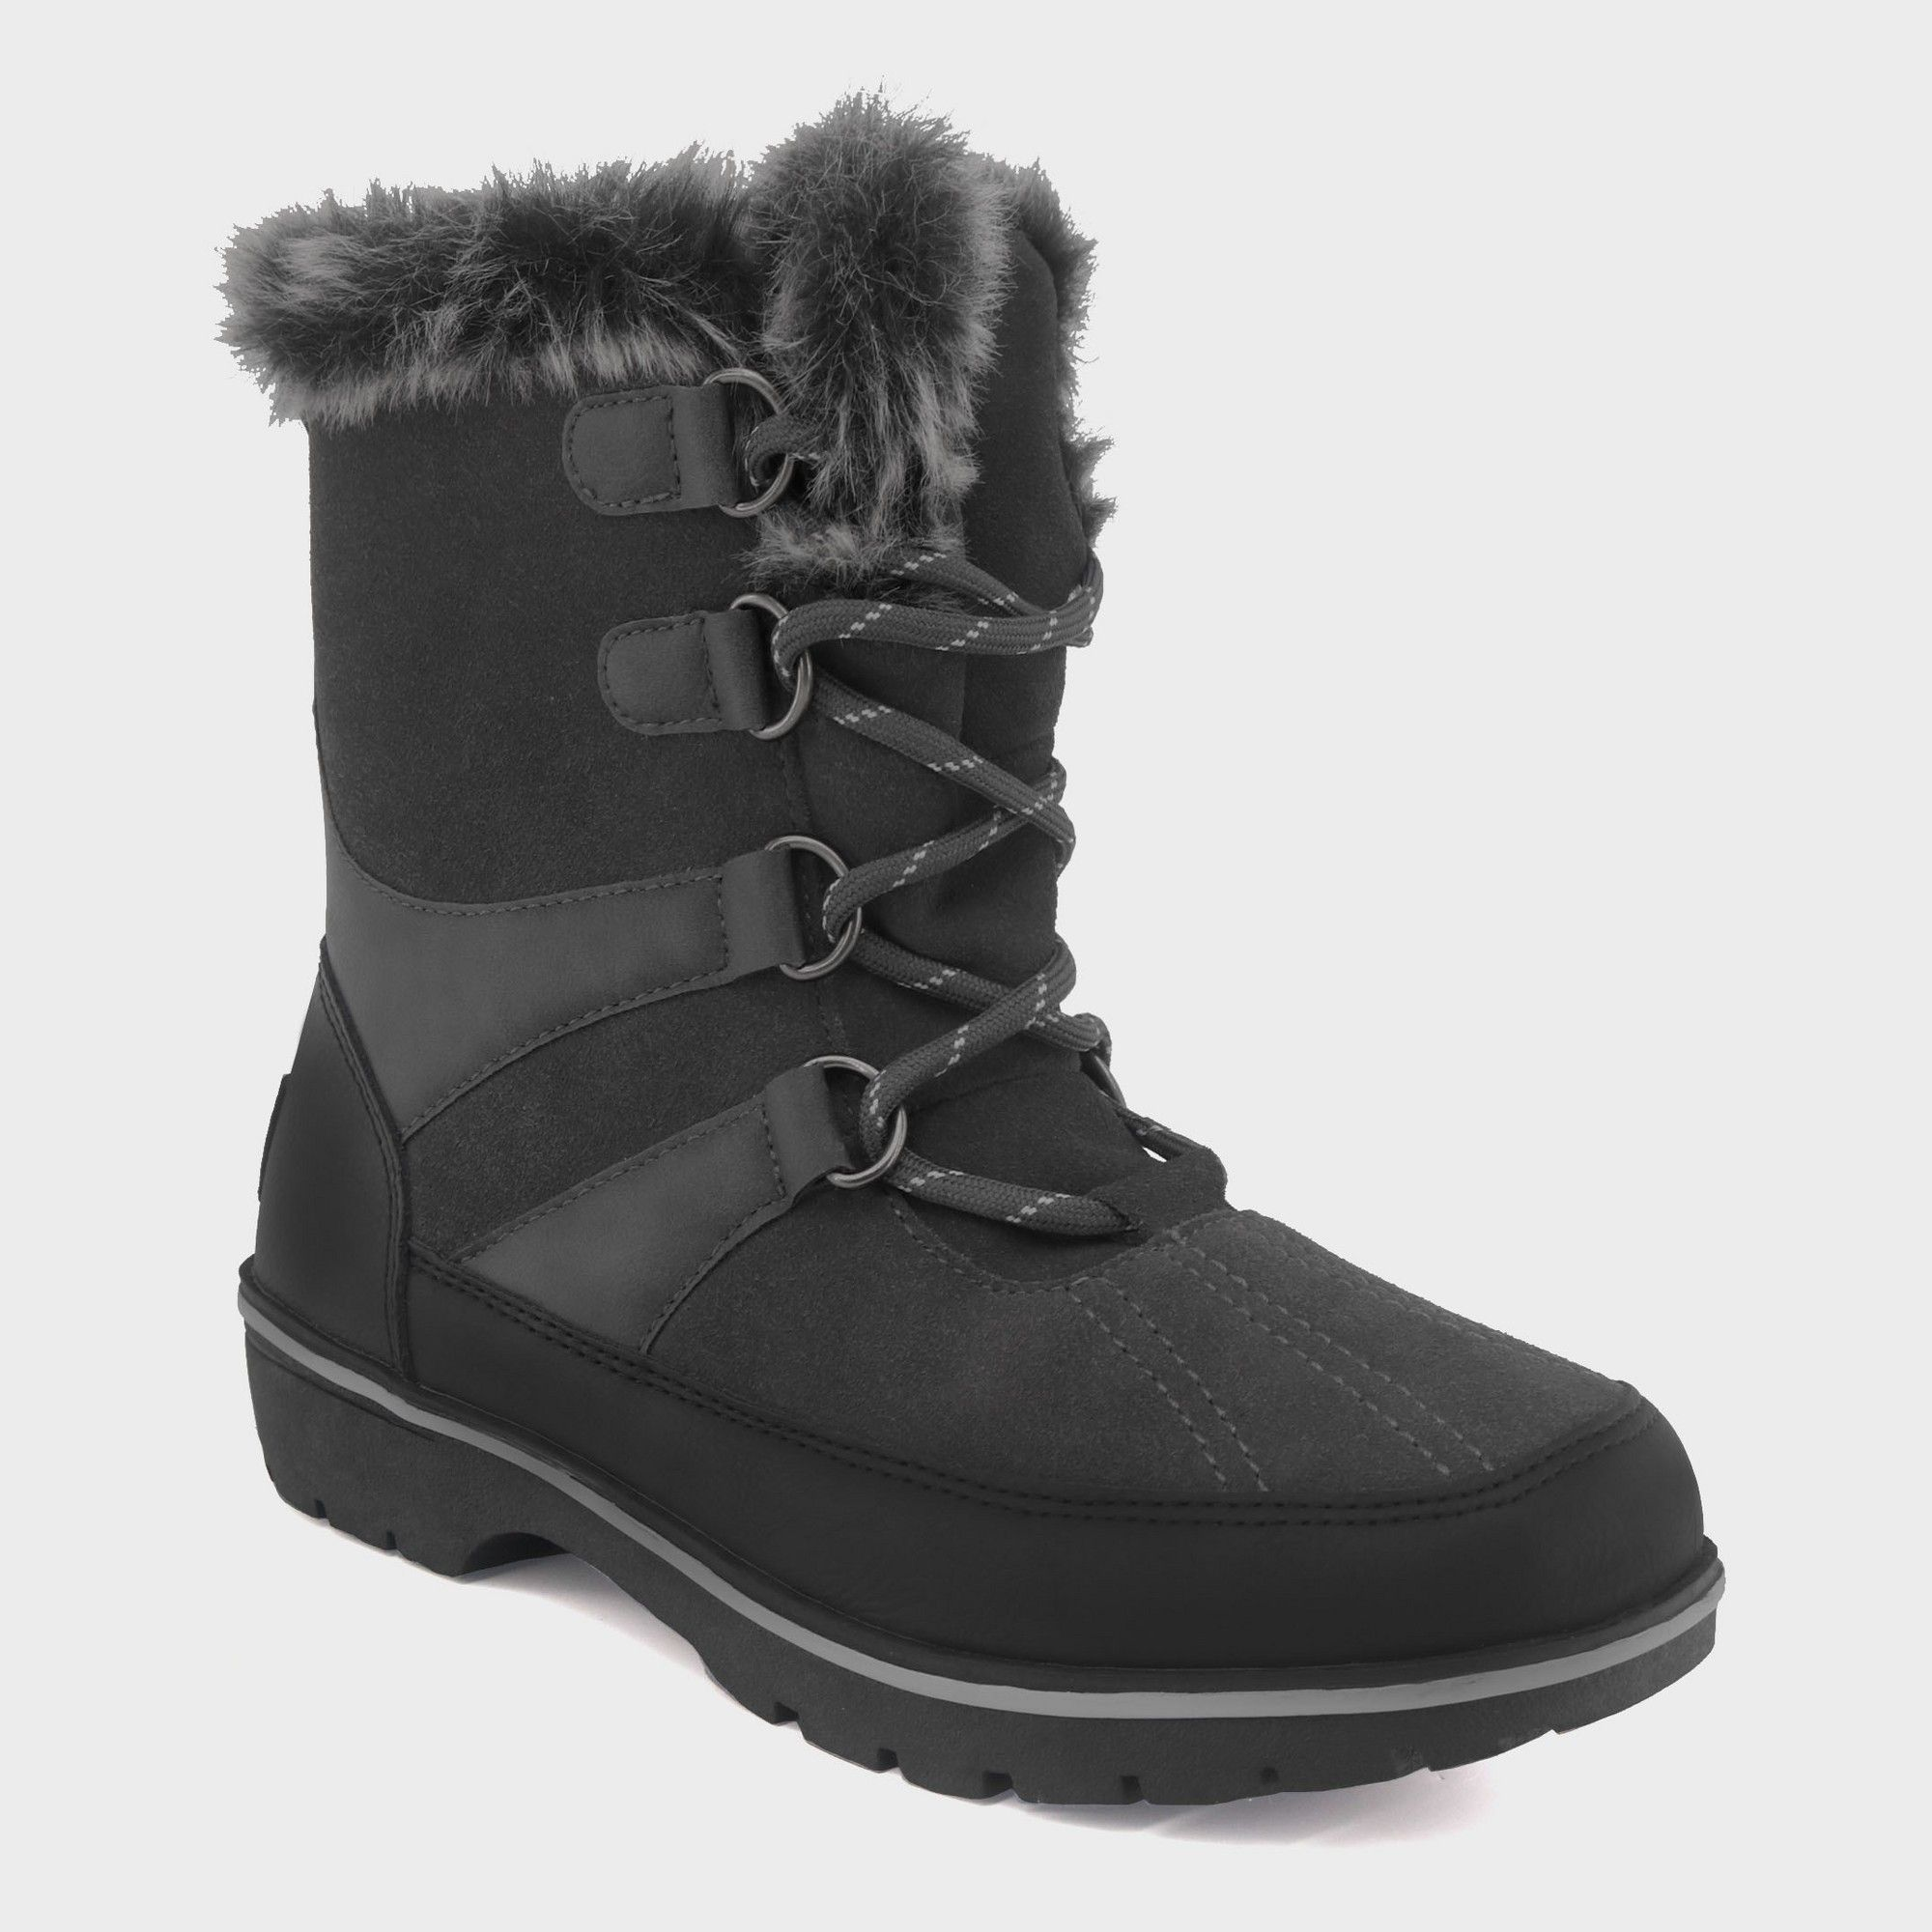 ae9d55da1ee9c Women's Ellysia Wide Width Short Functional Winter Boots - C9 Champion Gray  6W, Size: 6 Wide